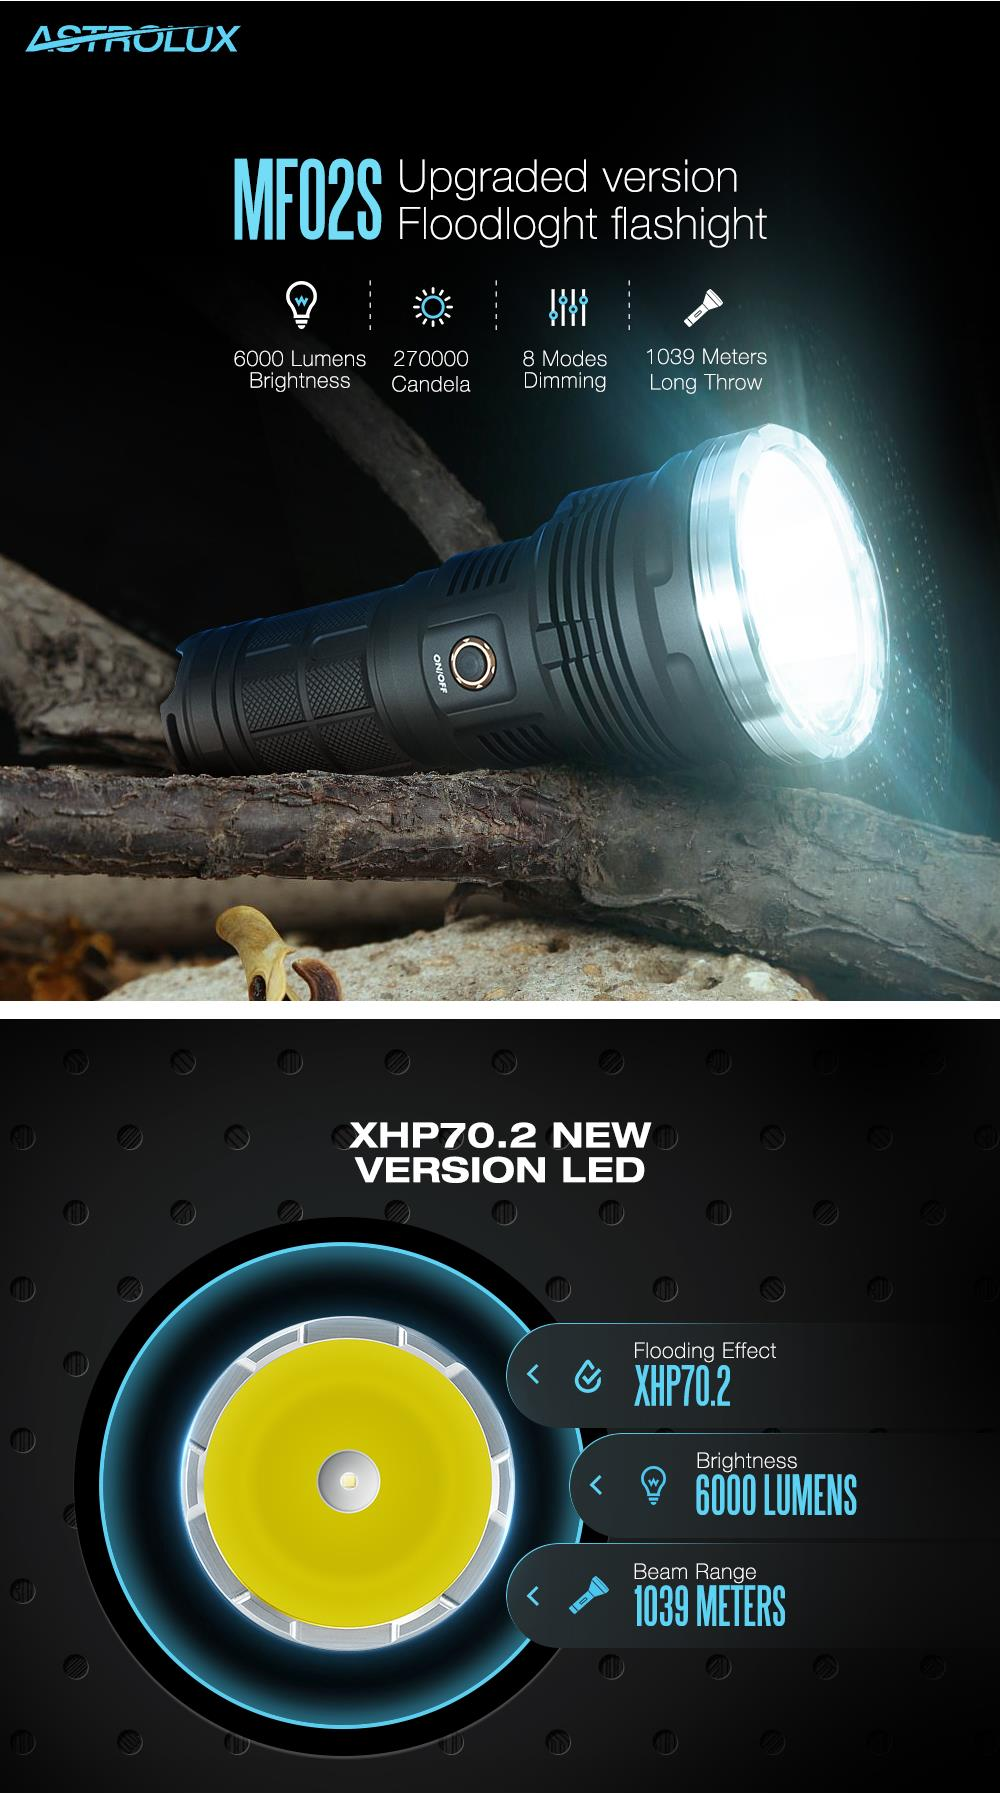 Astrolux MF02S XHP70.2 6000Lumens 8Modes Dimming Super Bright Floodlight Flooding Flashlight